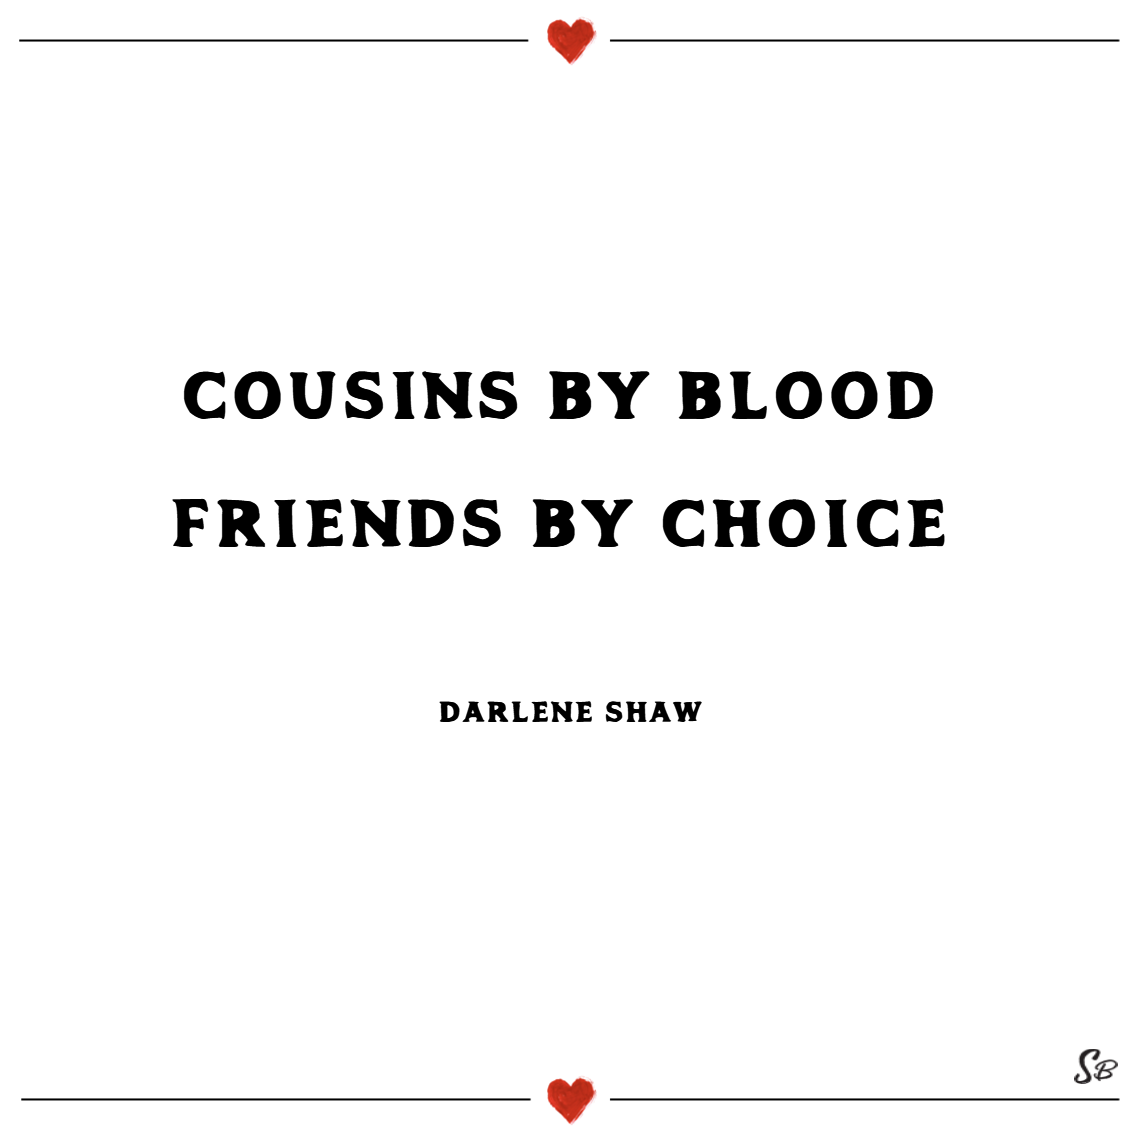 Cousins by blood friends by choice. – darlene shaw cousins quotes